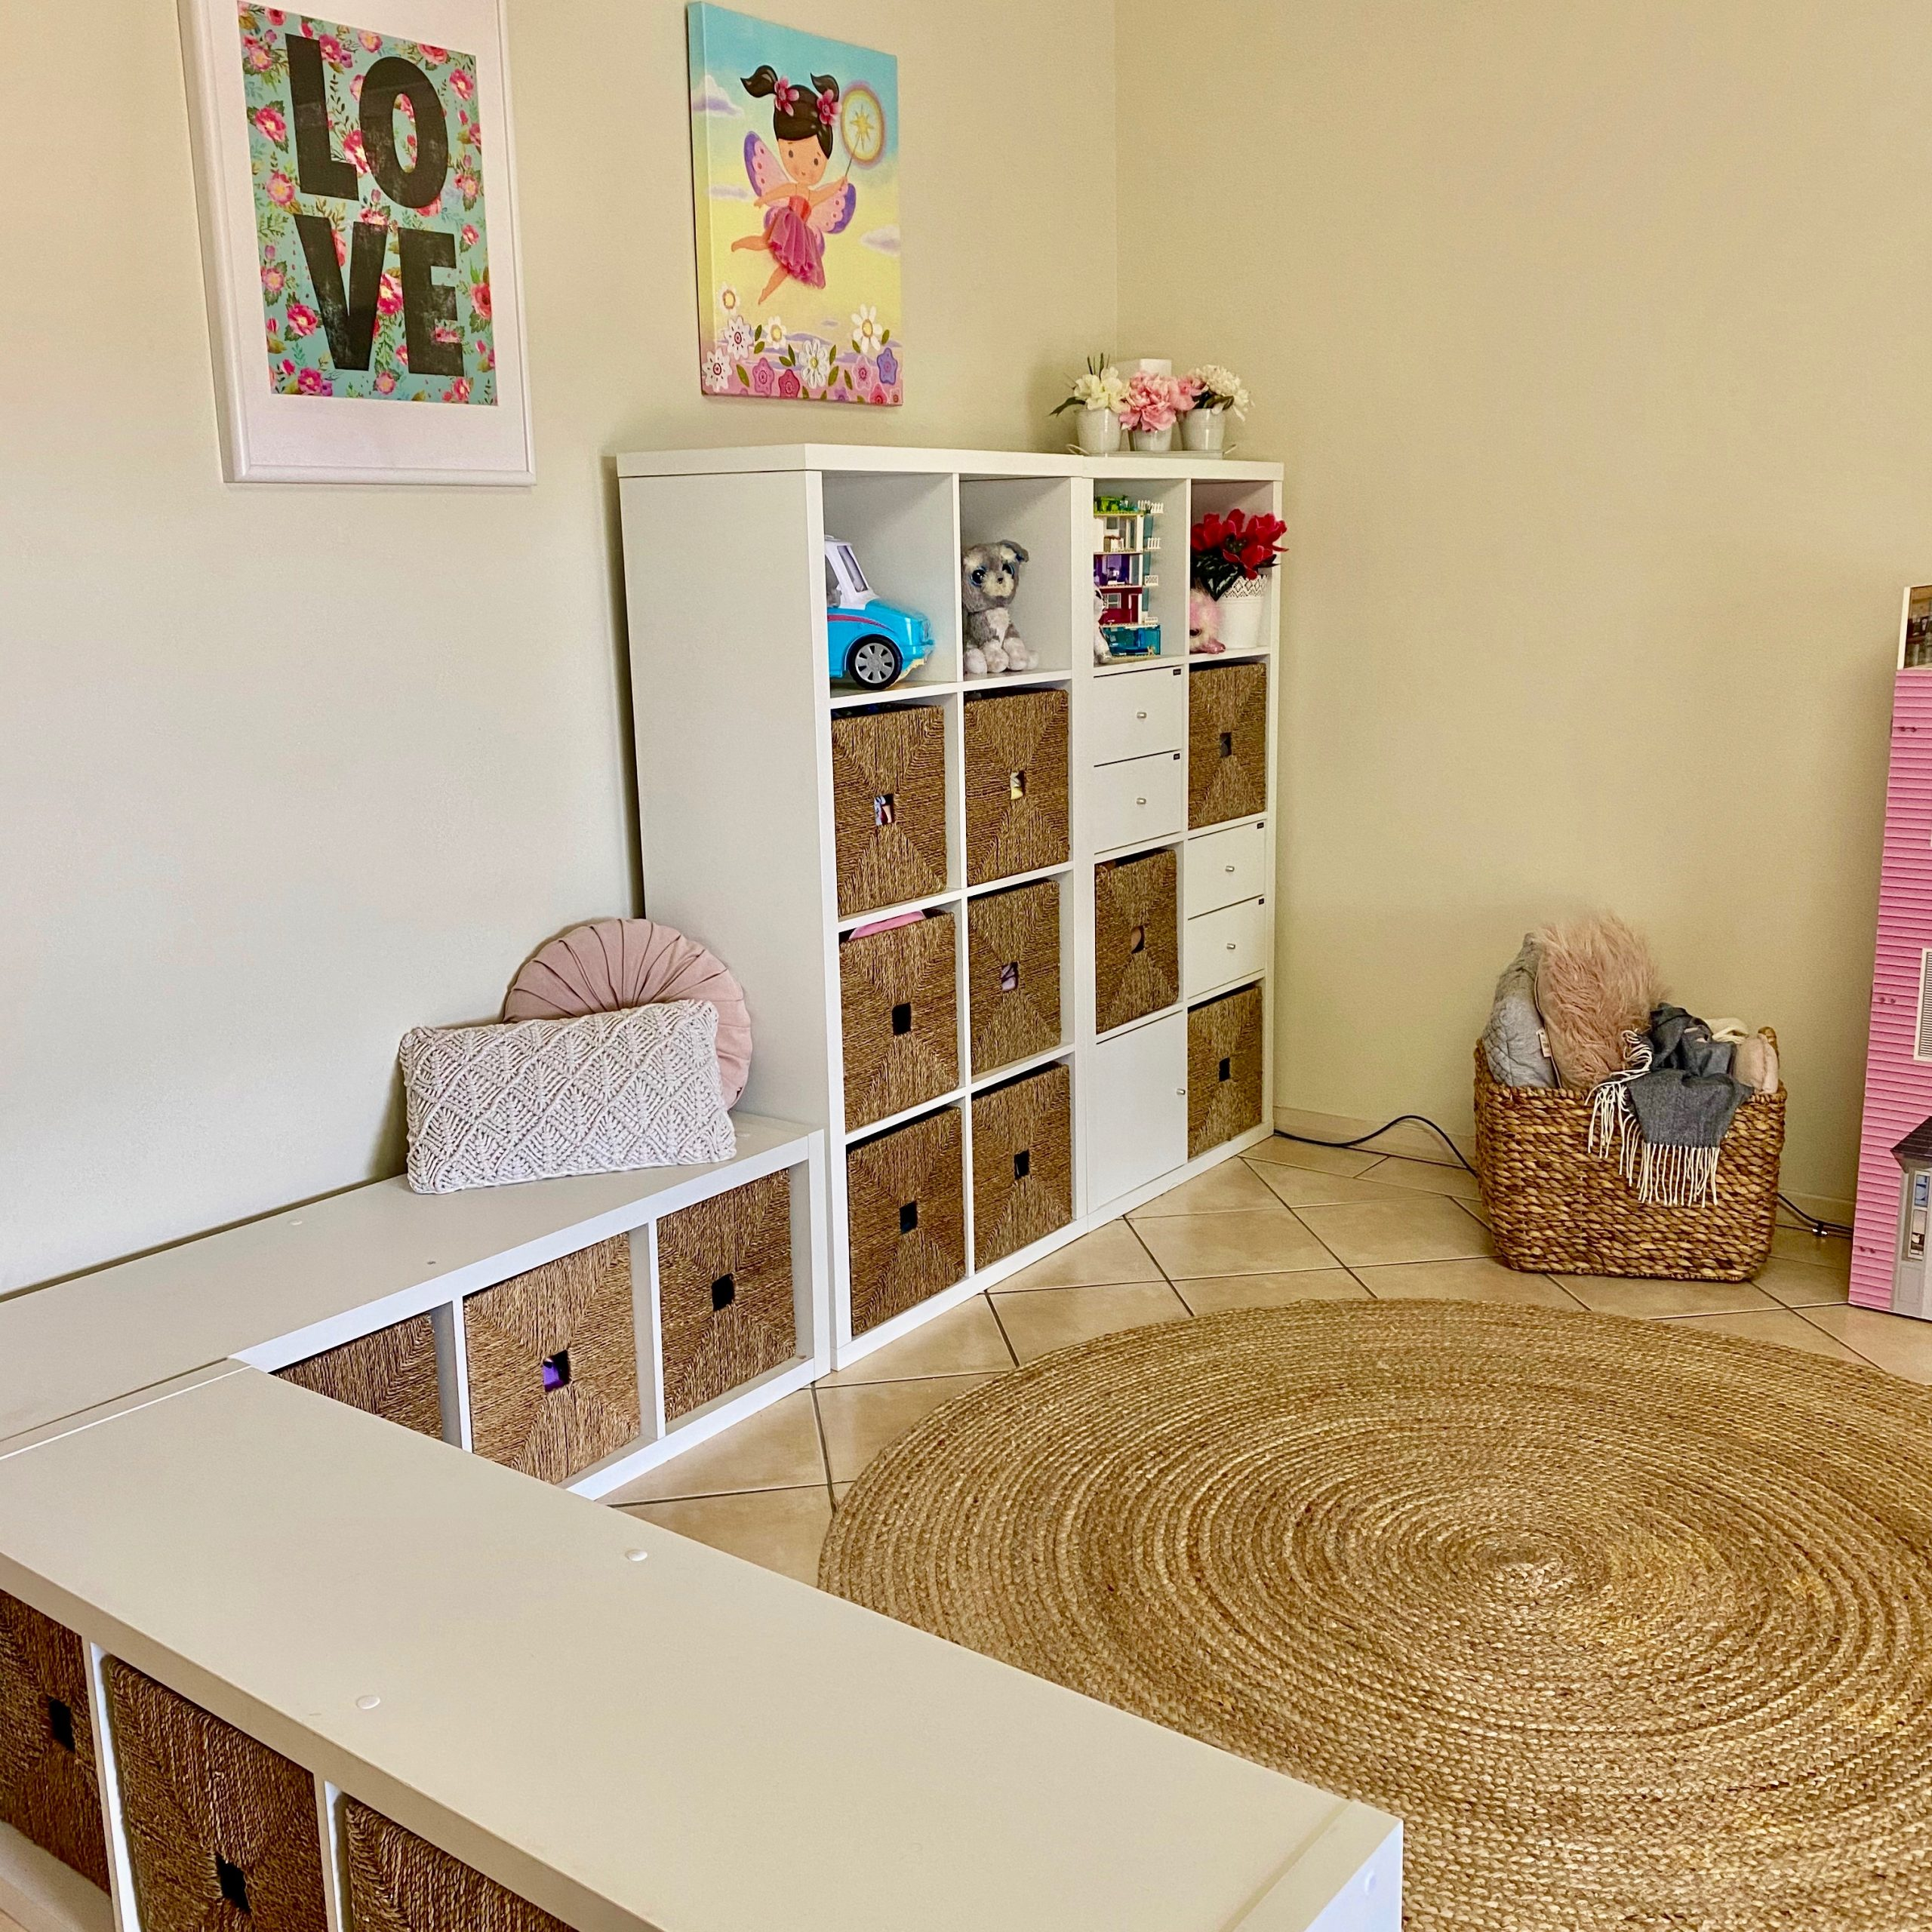 Playroom Dolls Storage After Organisation - The Organising Bee Canberra